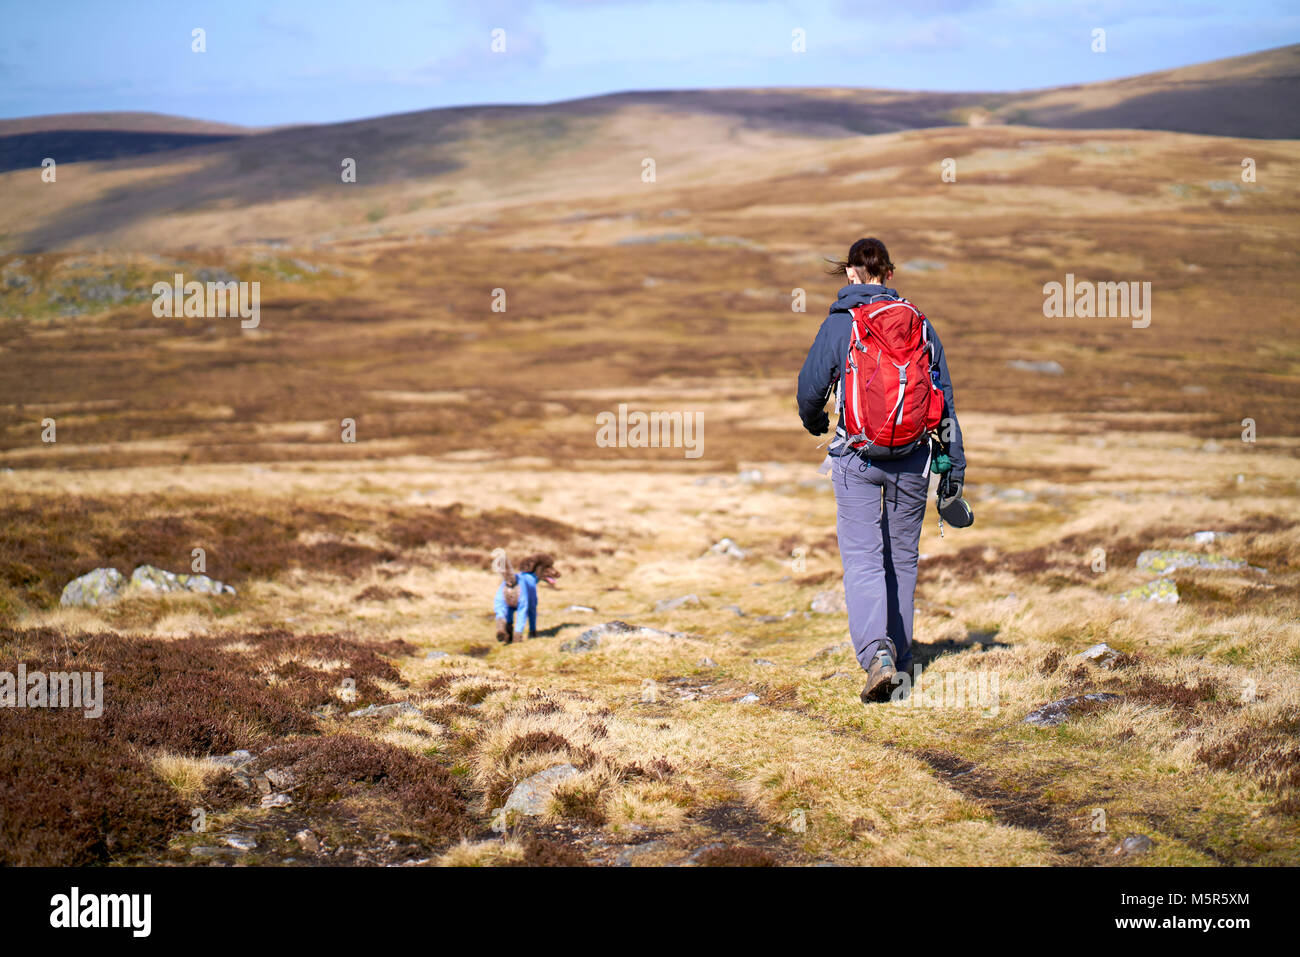 A hiker and their dog walking off the summit of Carrock Fell in the Caldbeck Fells, English Lake District, UK. - Stock Image